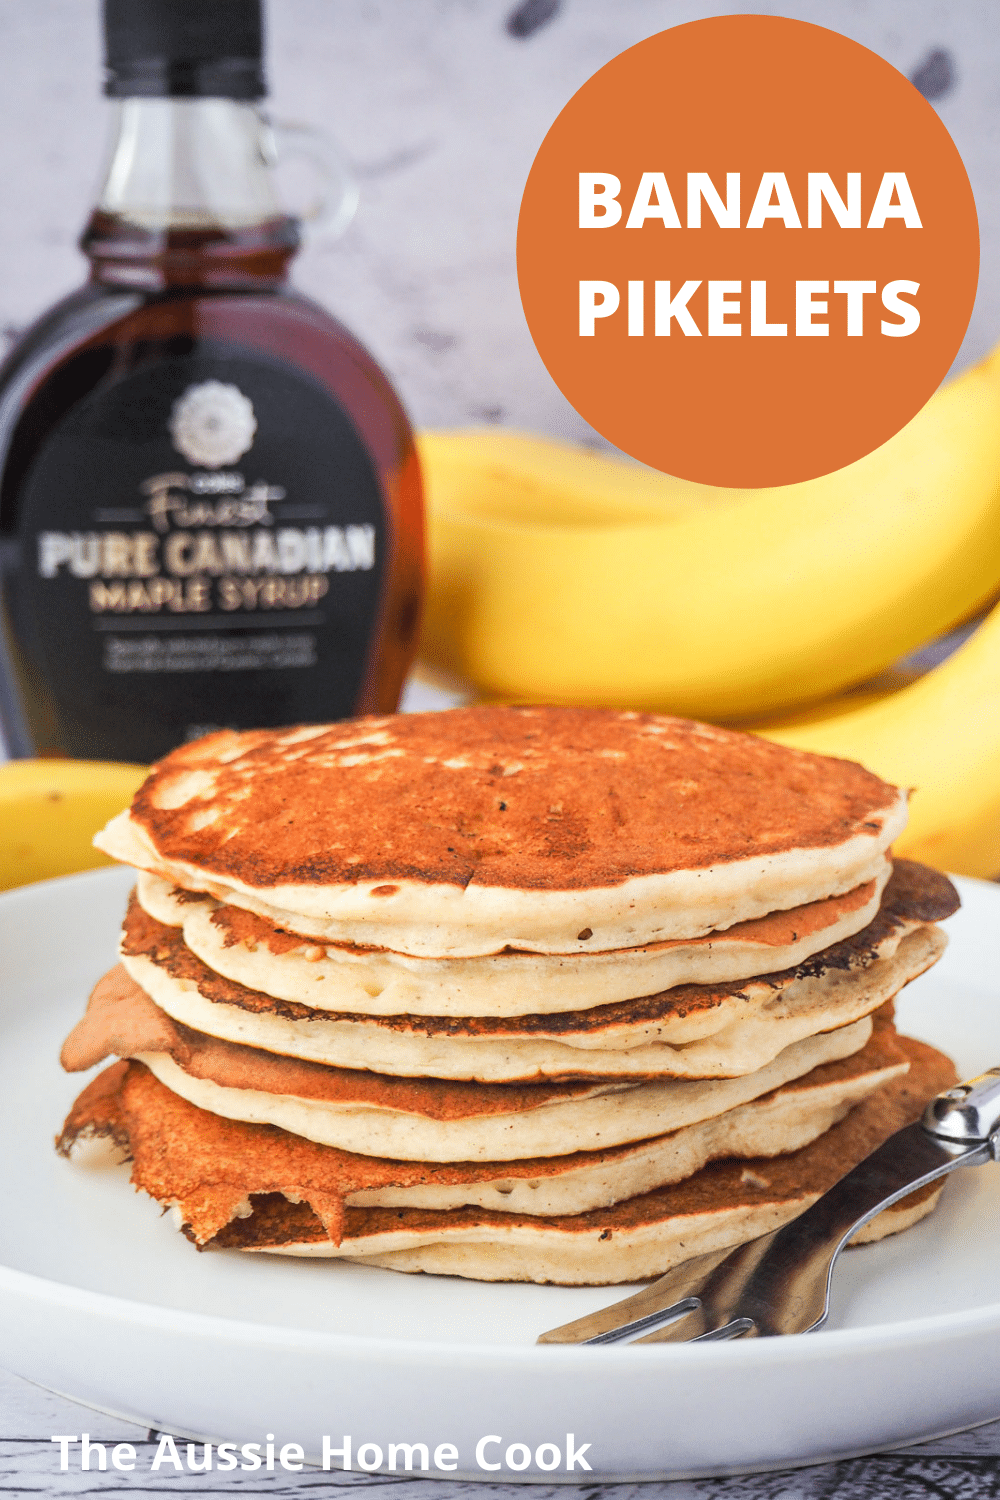 Stack of banana pikelets on a plate, with a vintage spoon on the side, surrounded by fresh whole bananas and bottle of maple syrup in the background and text overlay, banana pikelets, The Aussie Home Cook.